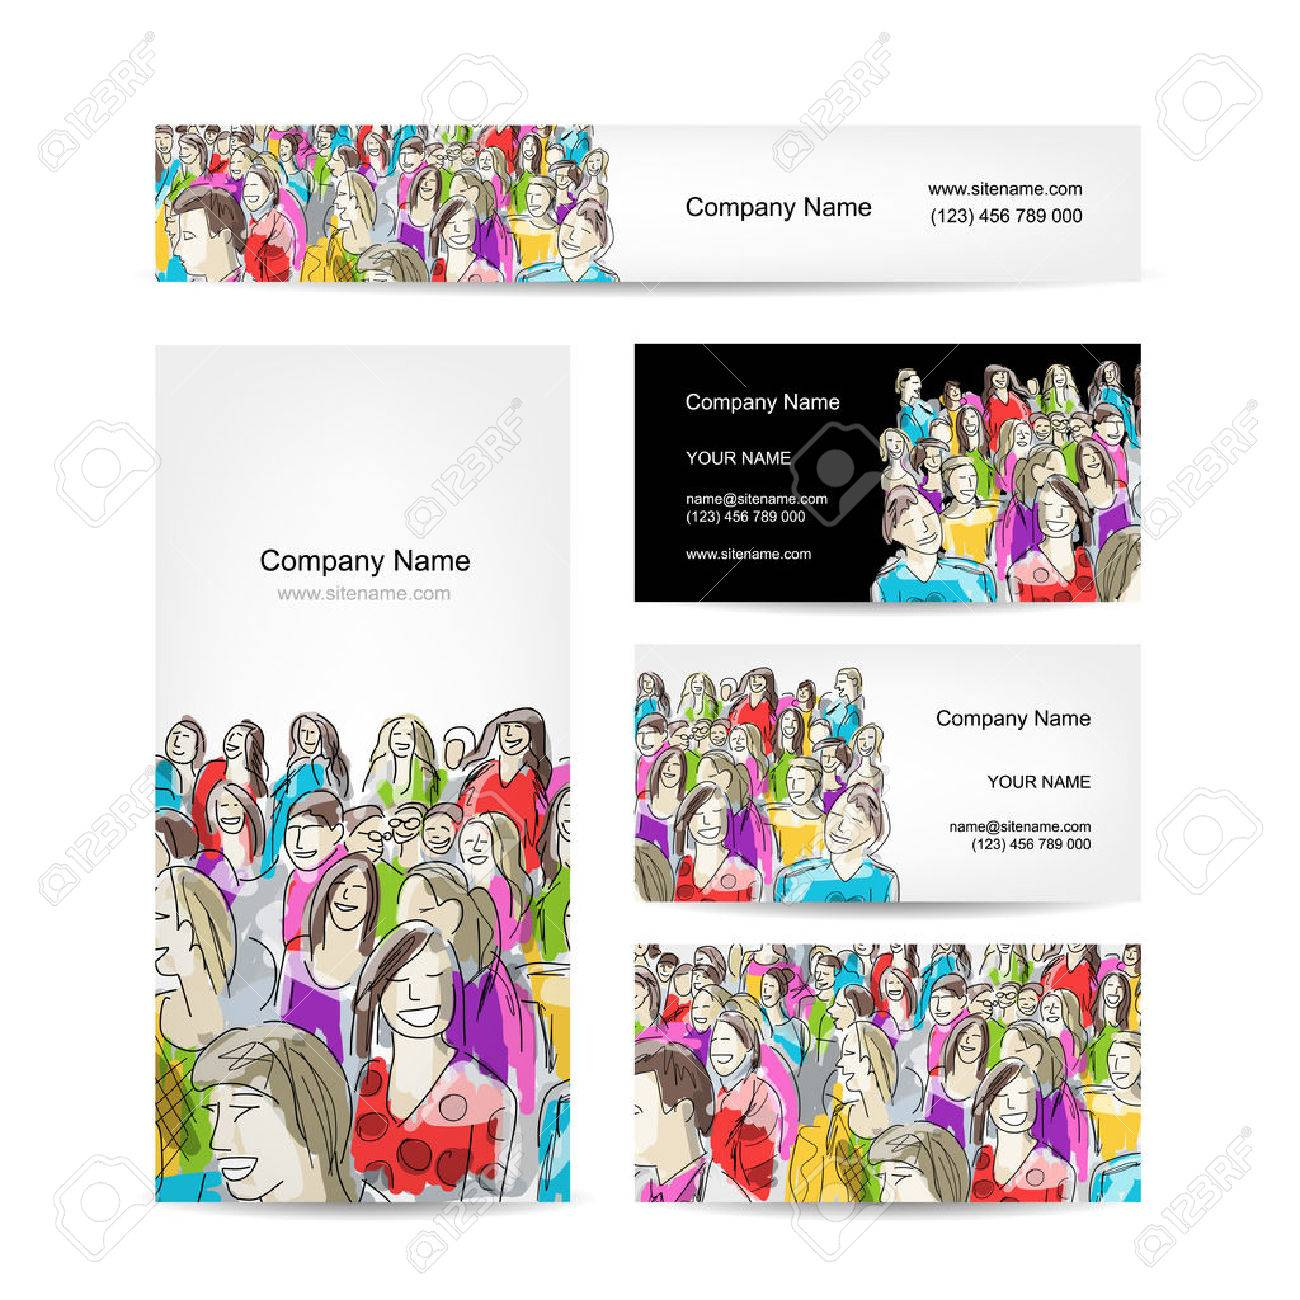 Business cards collection people crowd design royalty free cliparts business cards collection people crowd design stock vector 39381214 reheart Image collections